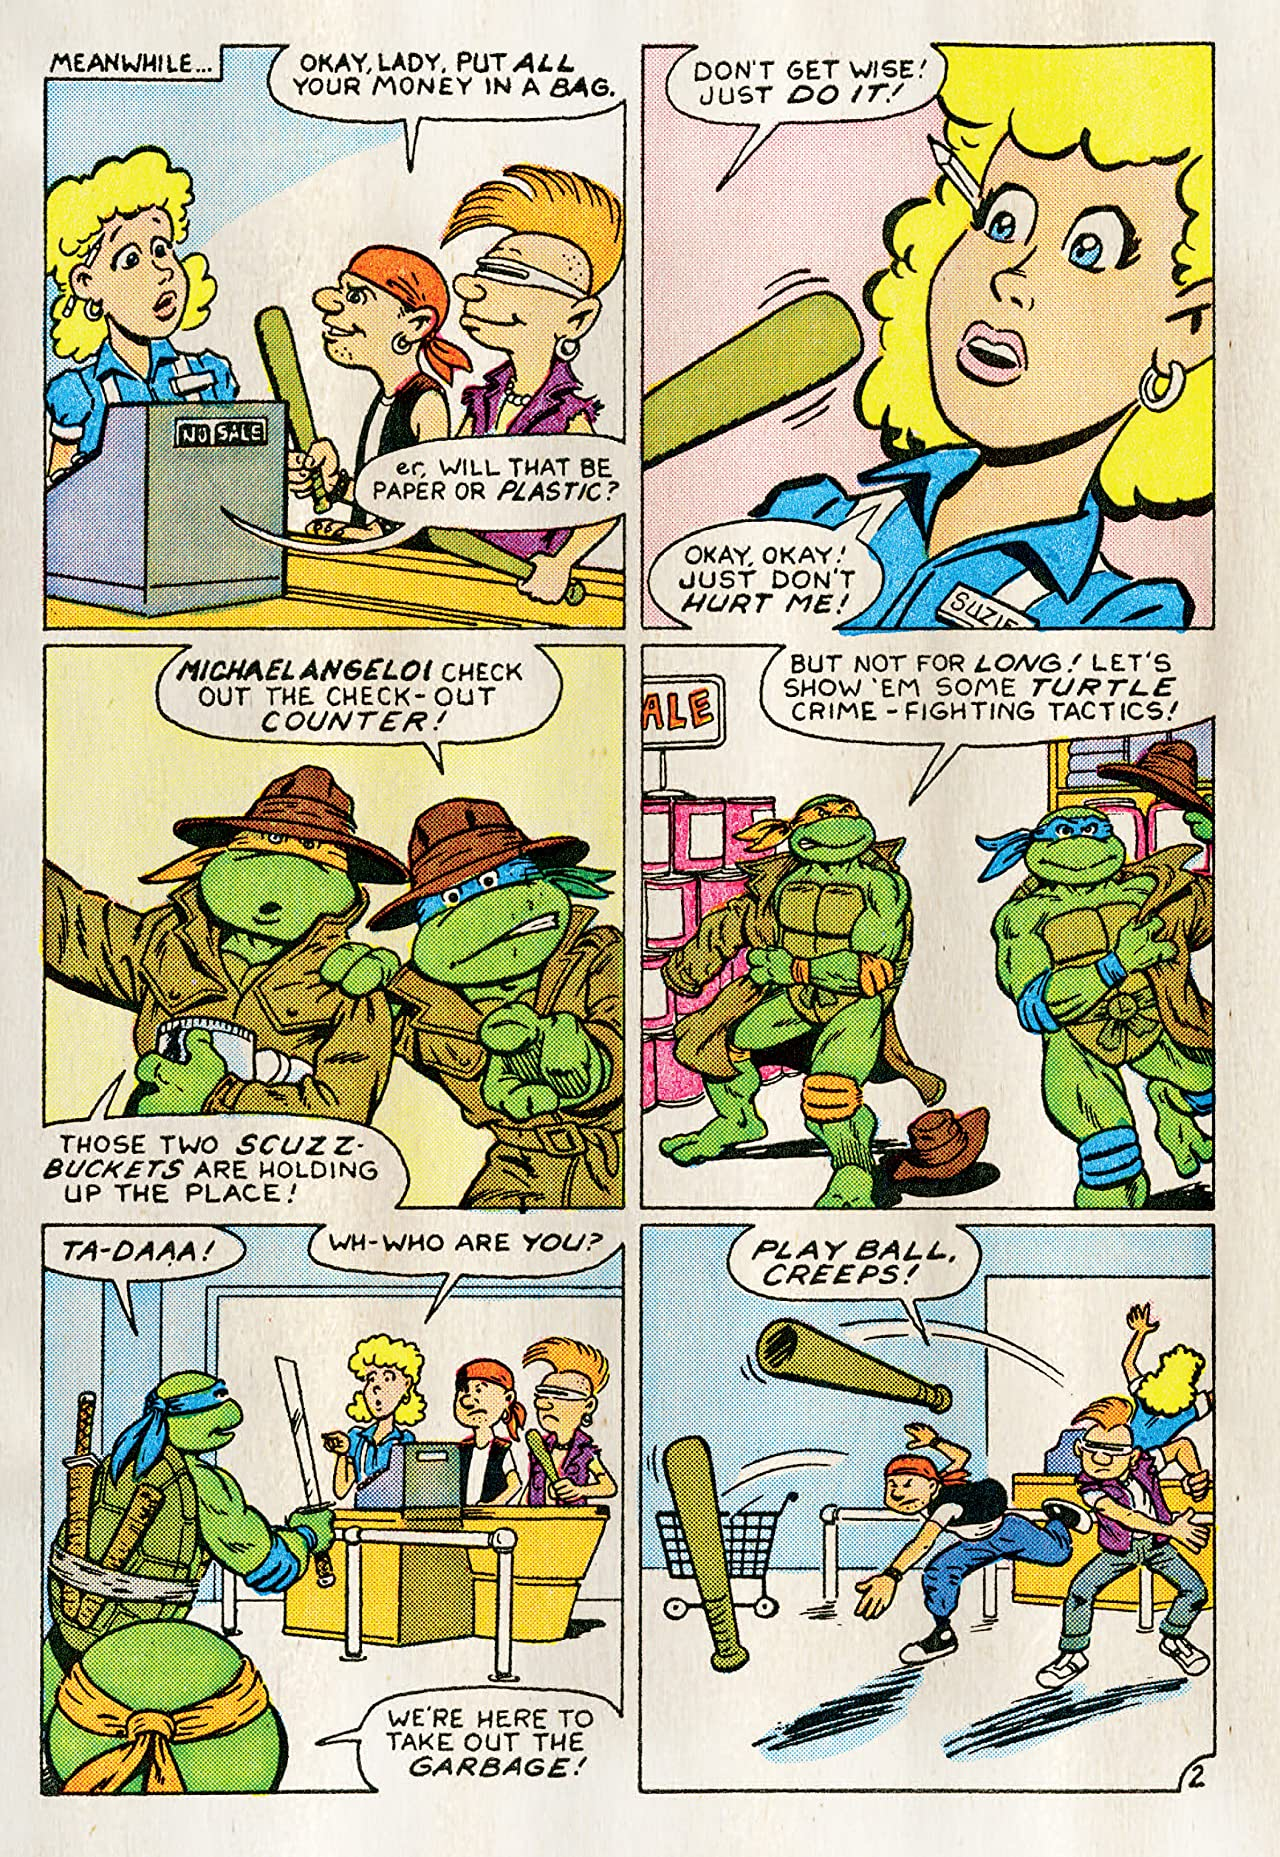 Teenage Mutant Ninja Turtles Adventures Vol. 1